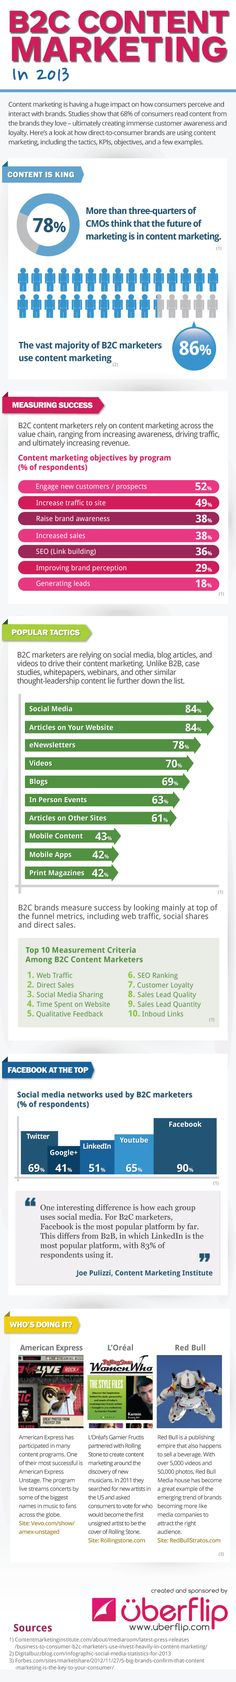 B2C Content Marketing 2013 #infographic